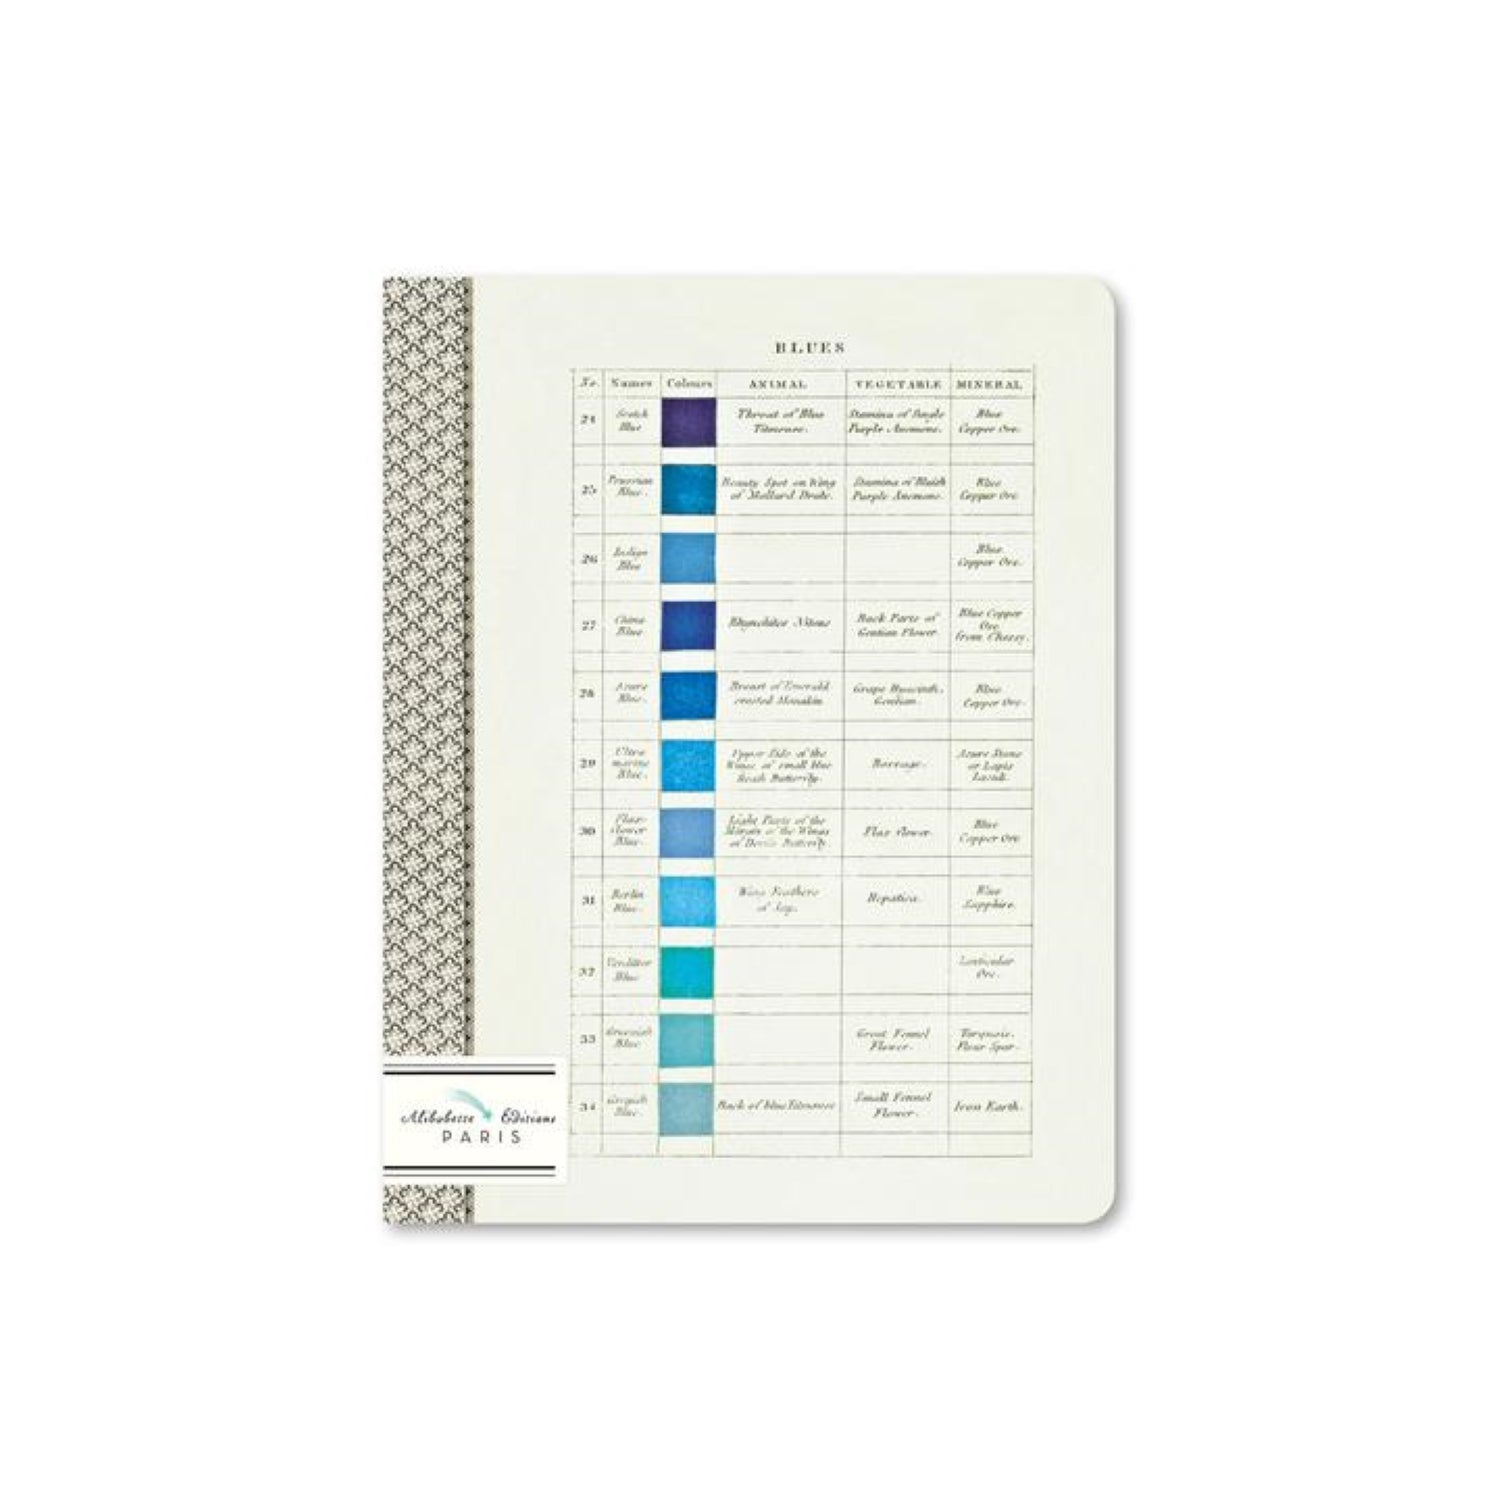 Alibabette Editions Composition Book A5 Lined - Werner